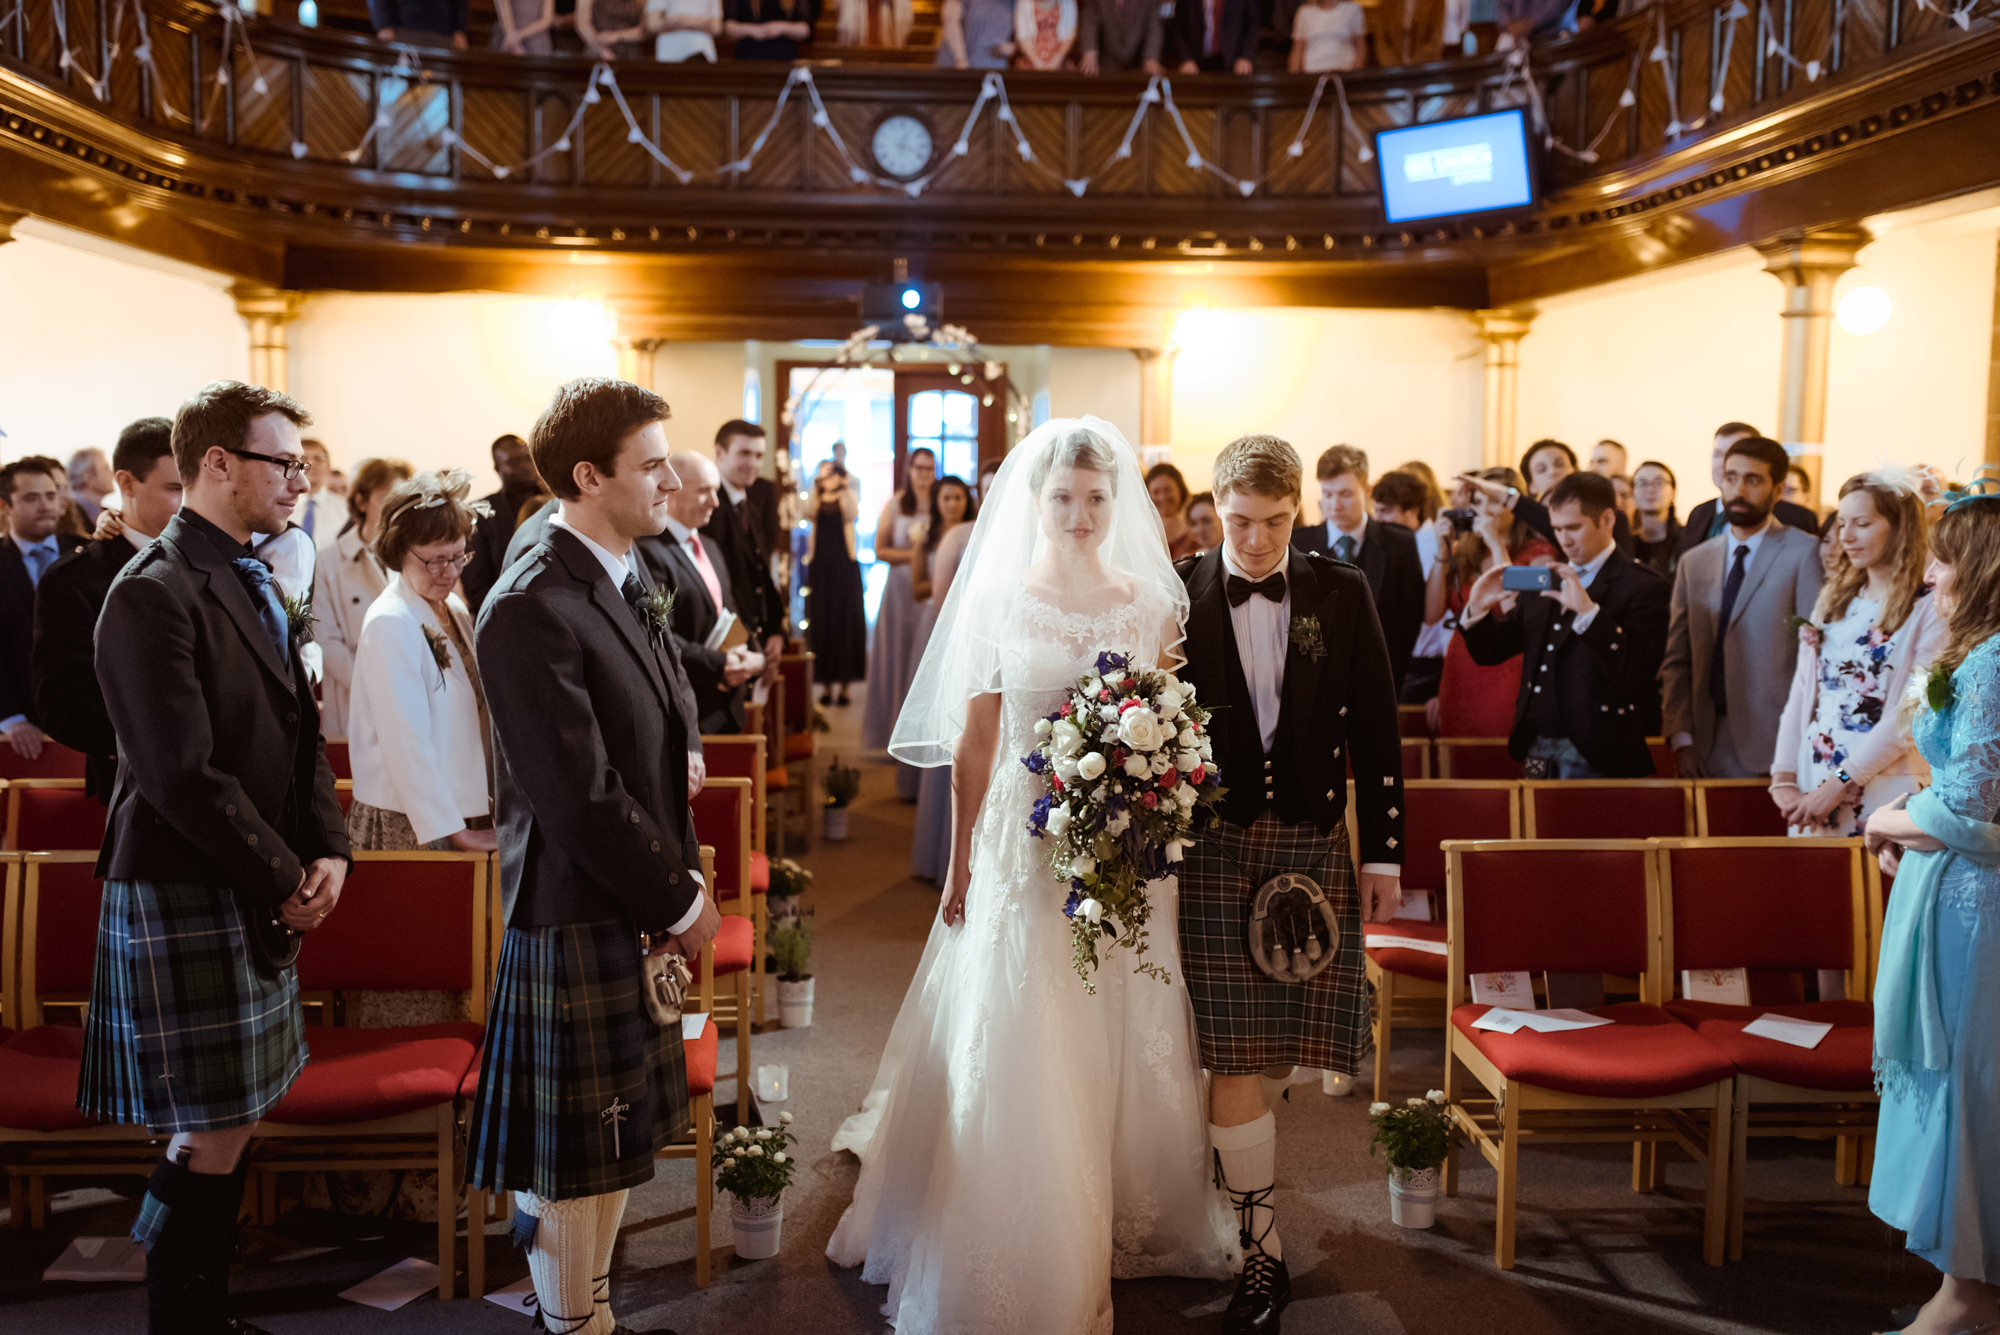 wedding-ceremony-edinburgh.jpg